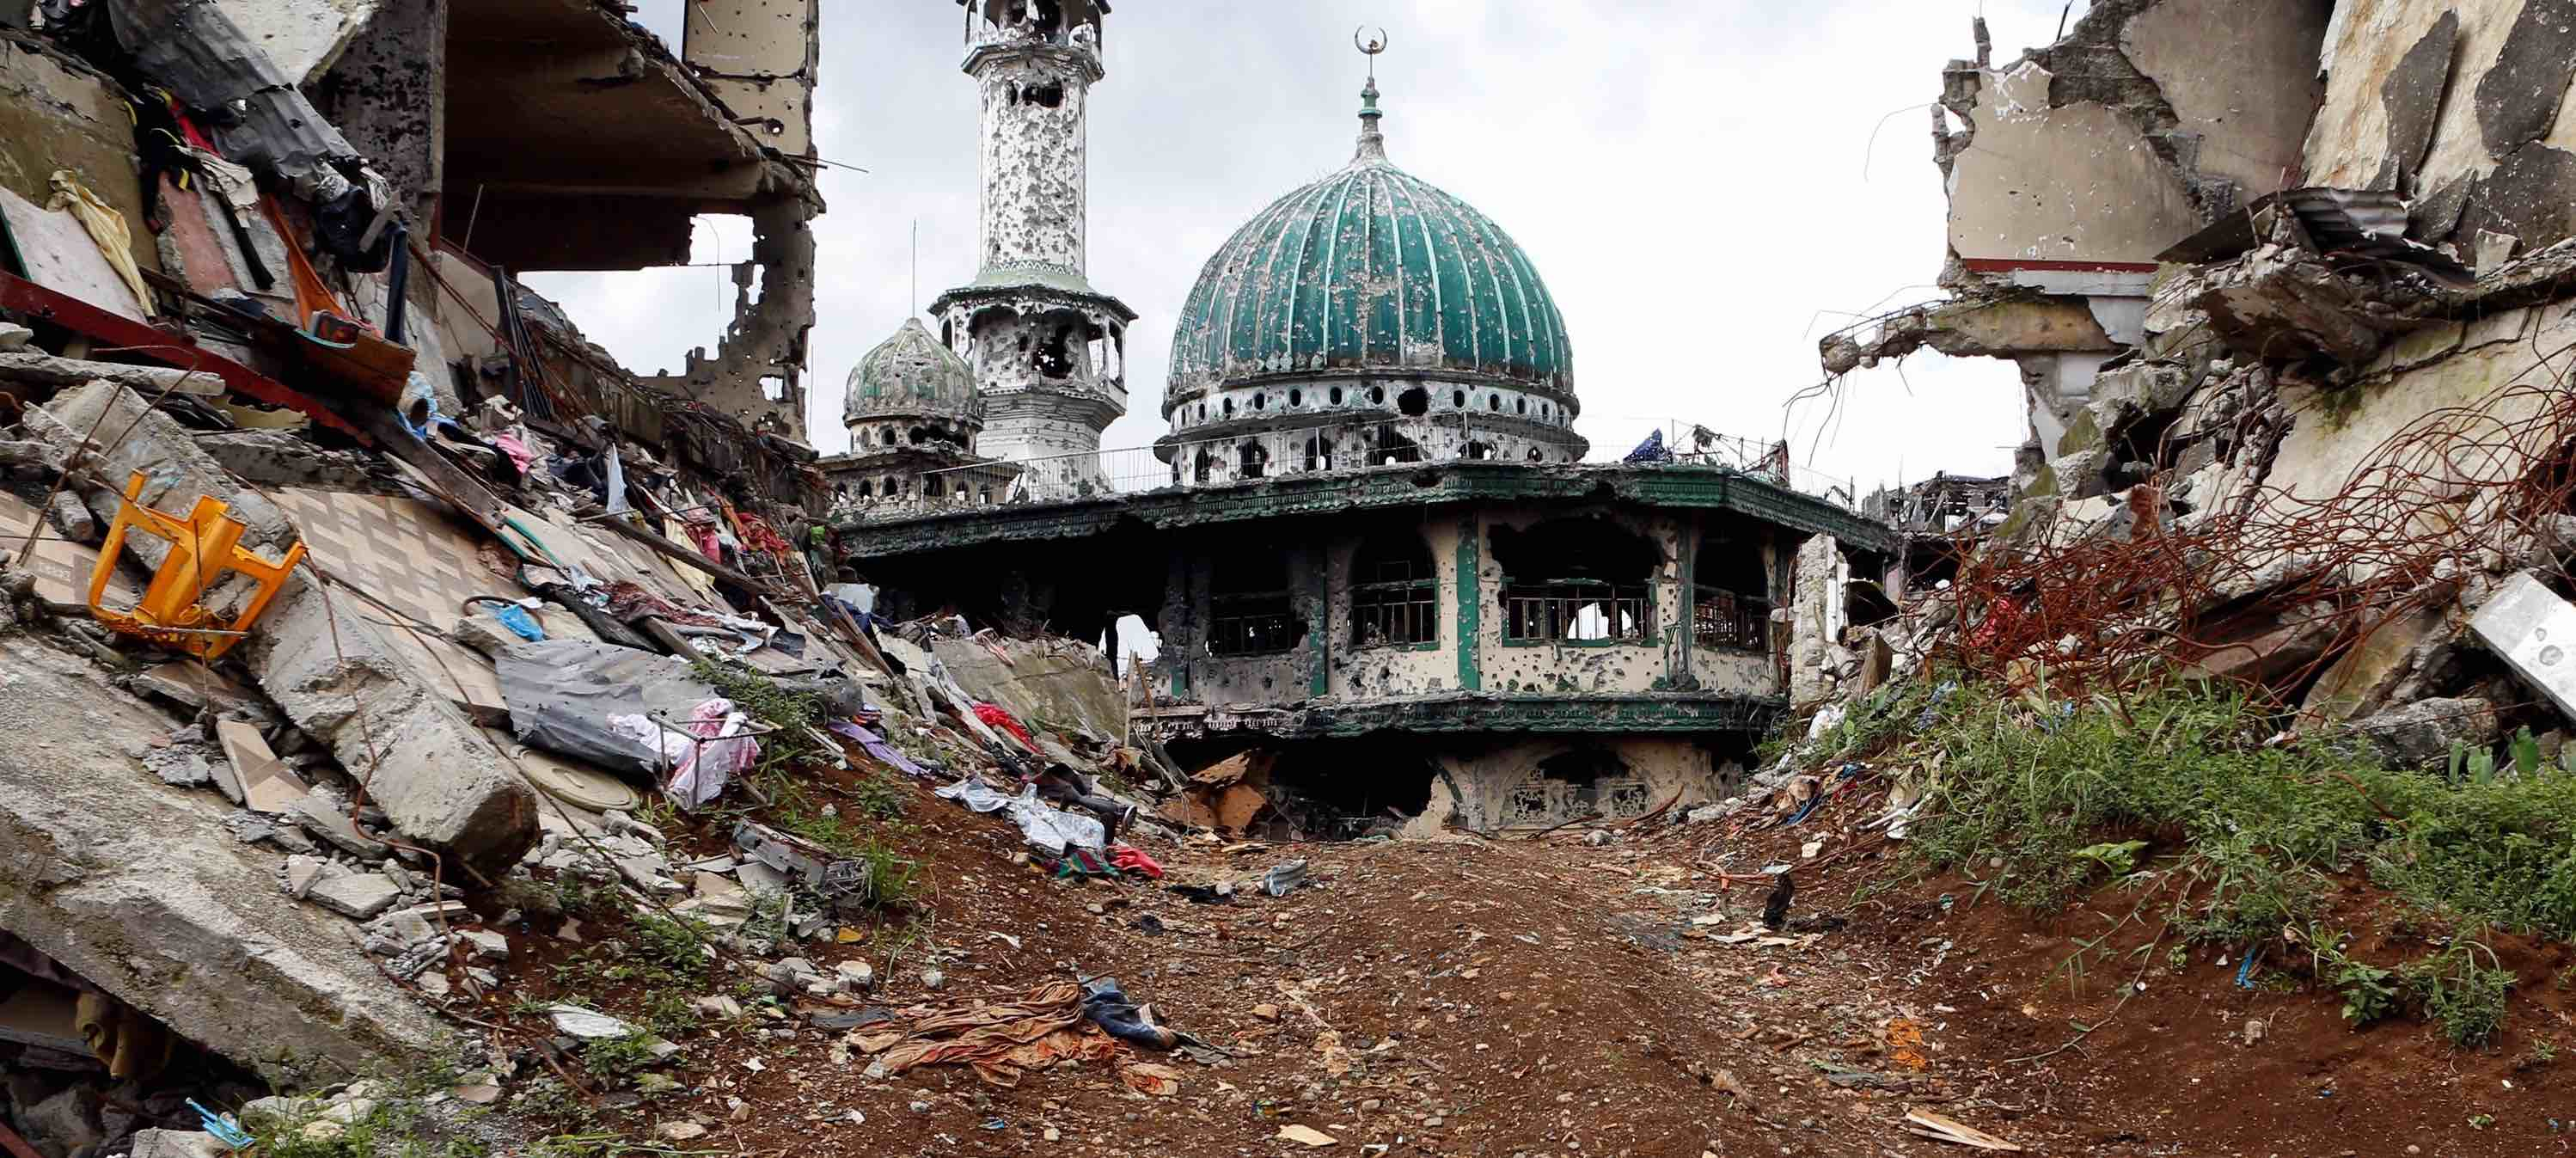 A bullet-riddled mosque following the five-month siege in Marawi (Photo: Jeoffrey Maitem via Getty)